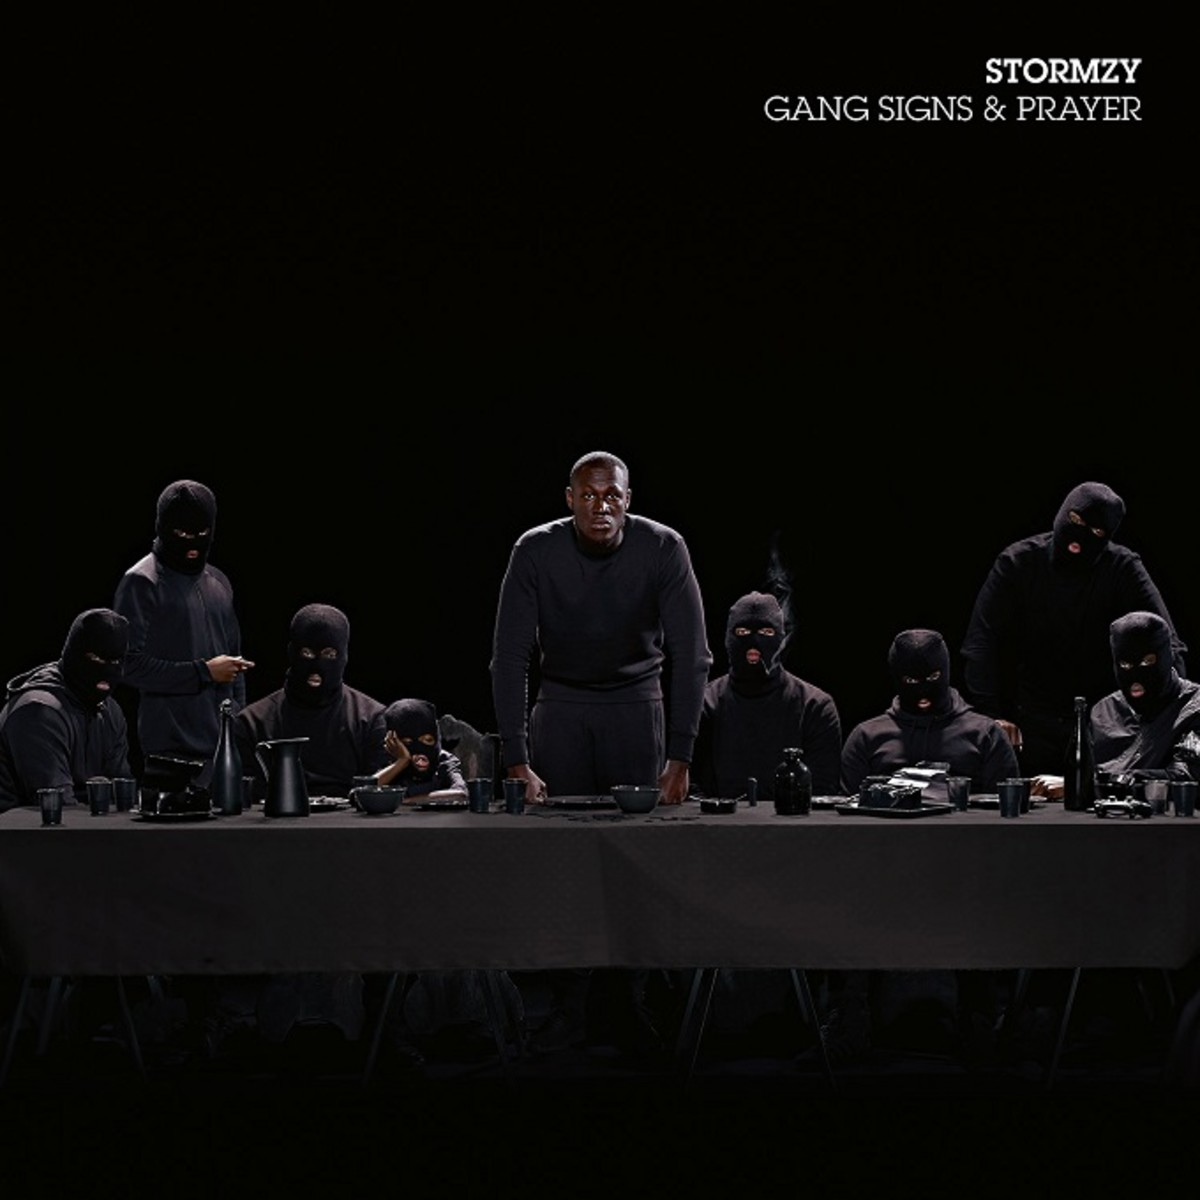 Stormzy-Gang-Signs-And-Prayer-Track-By-Track-Review-Cover-Image